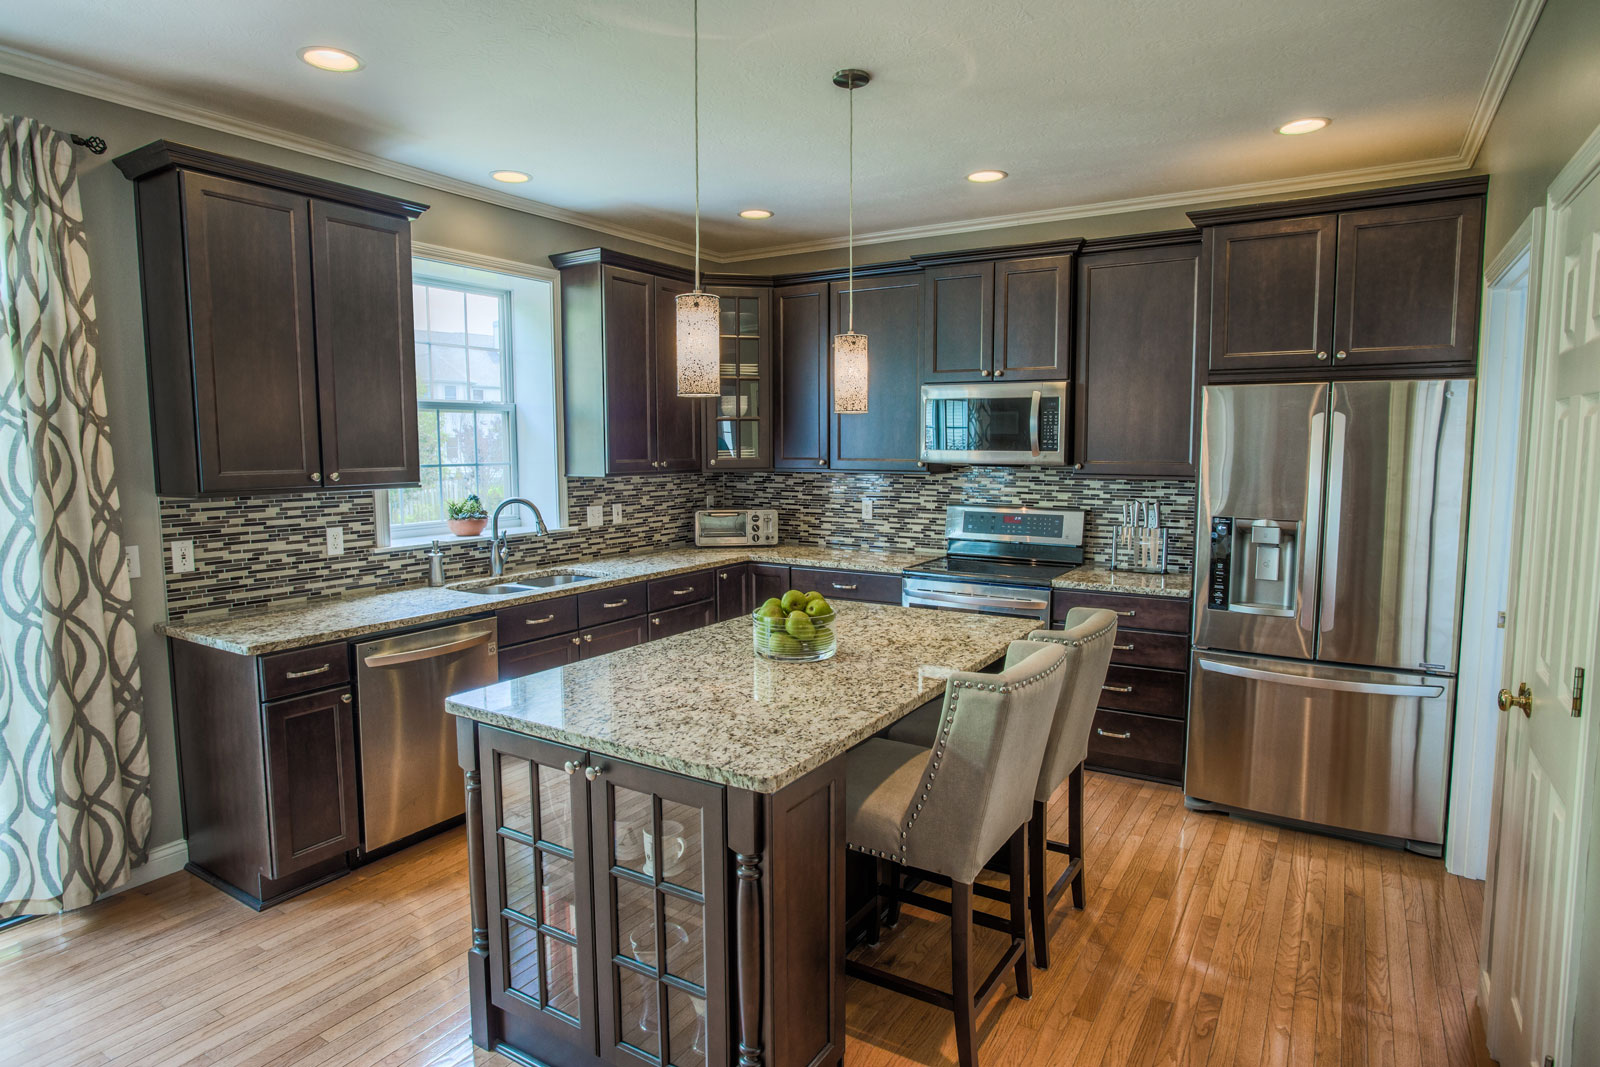 Kitchen Remodeling & Design Services West Lafayette, Indiana on Kitchen Remodeling Ideas Pictures  id=65550